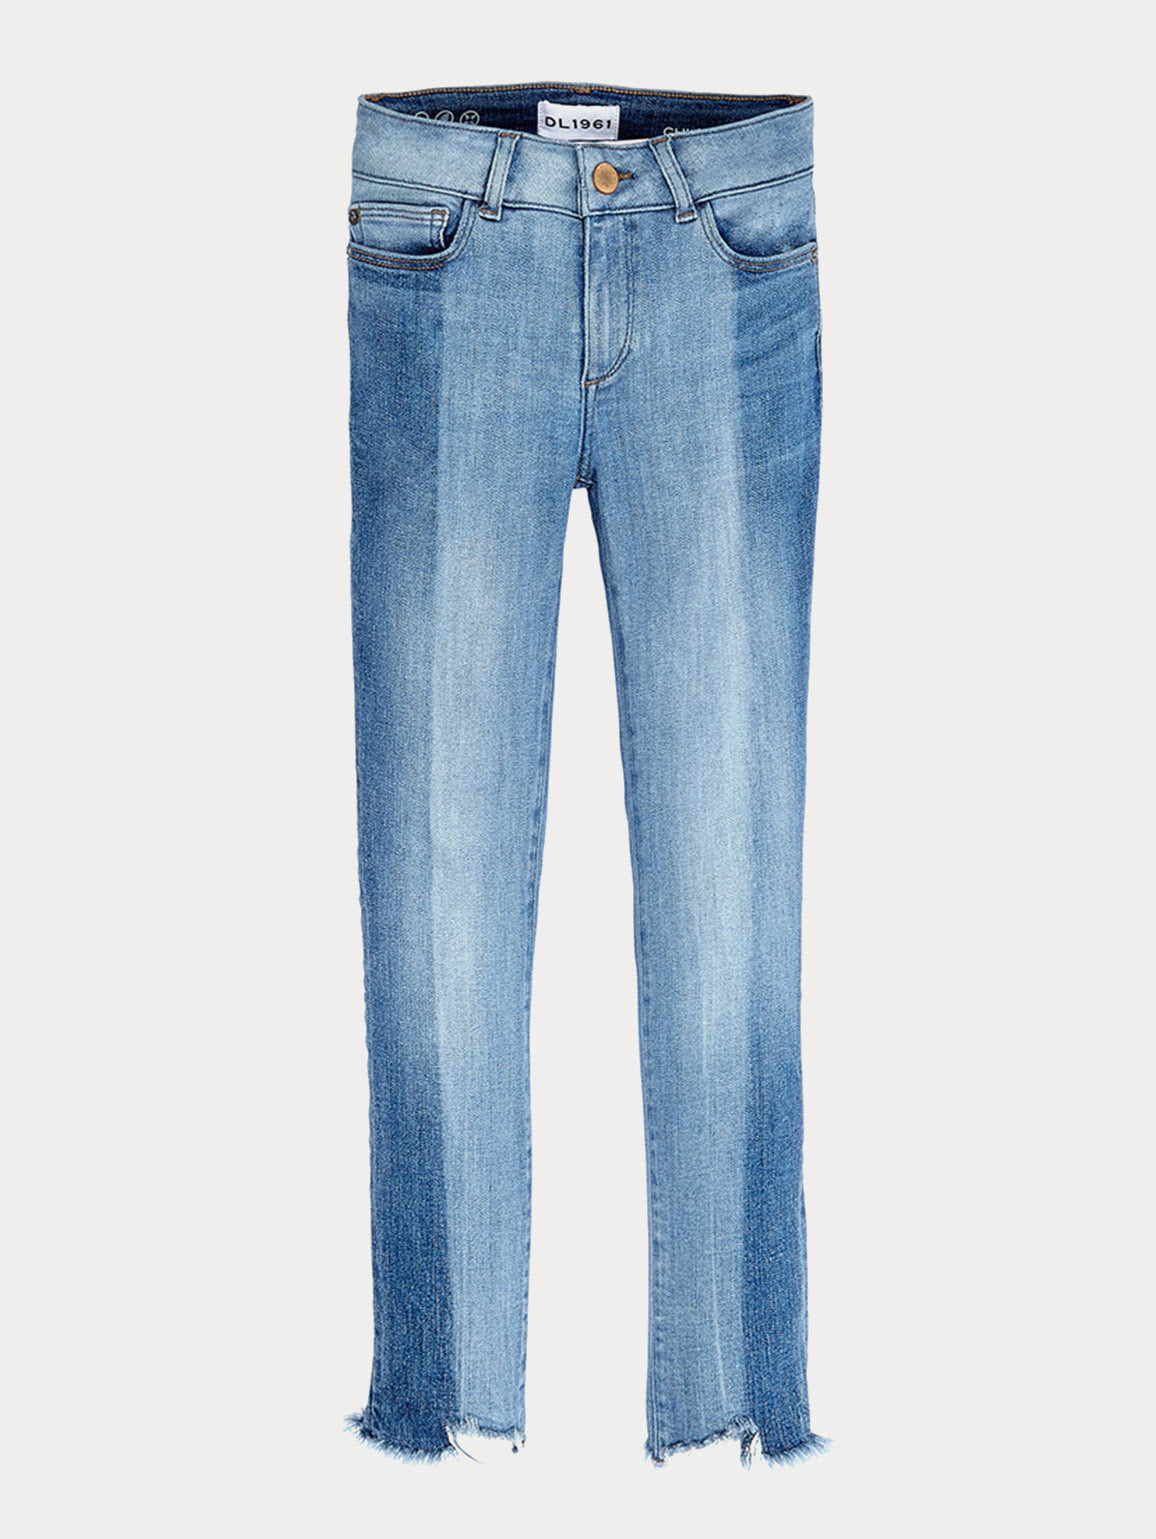 Girls - Chloe Skinny | Hollywood - DL1961